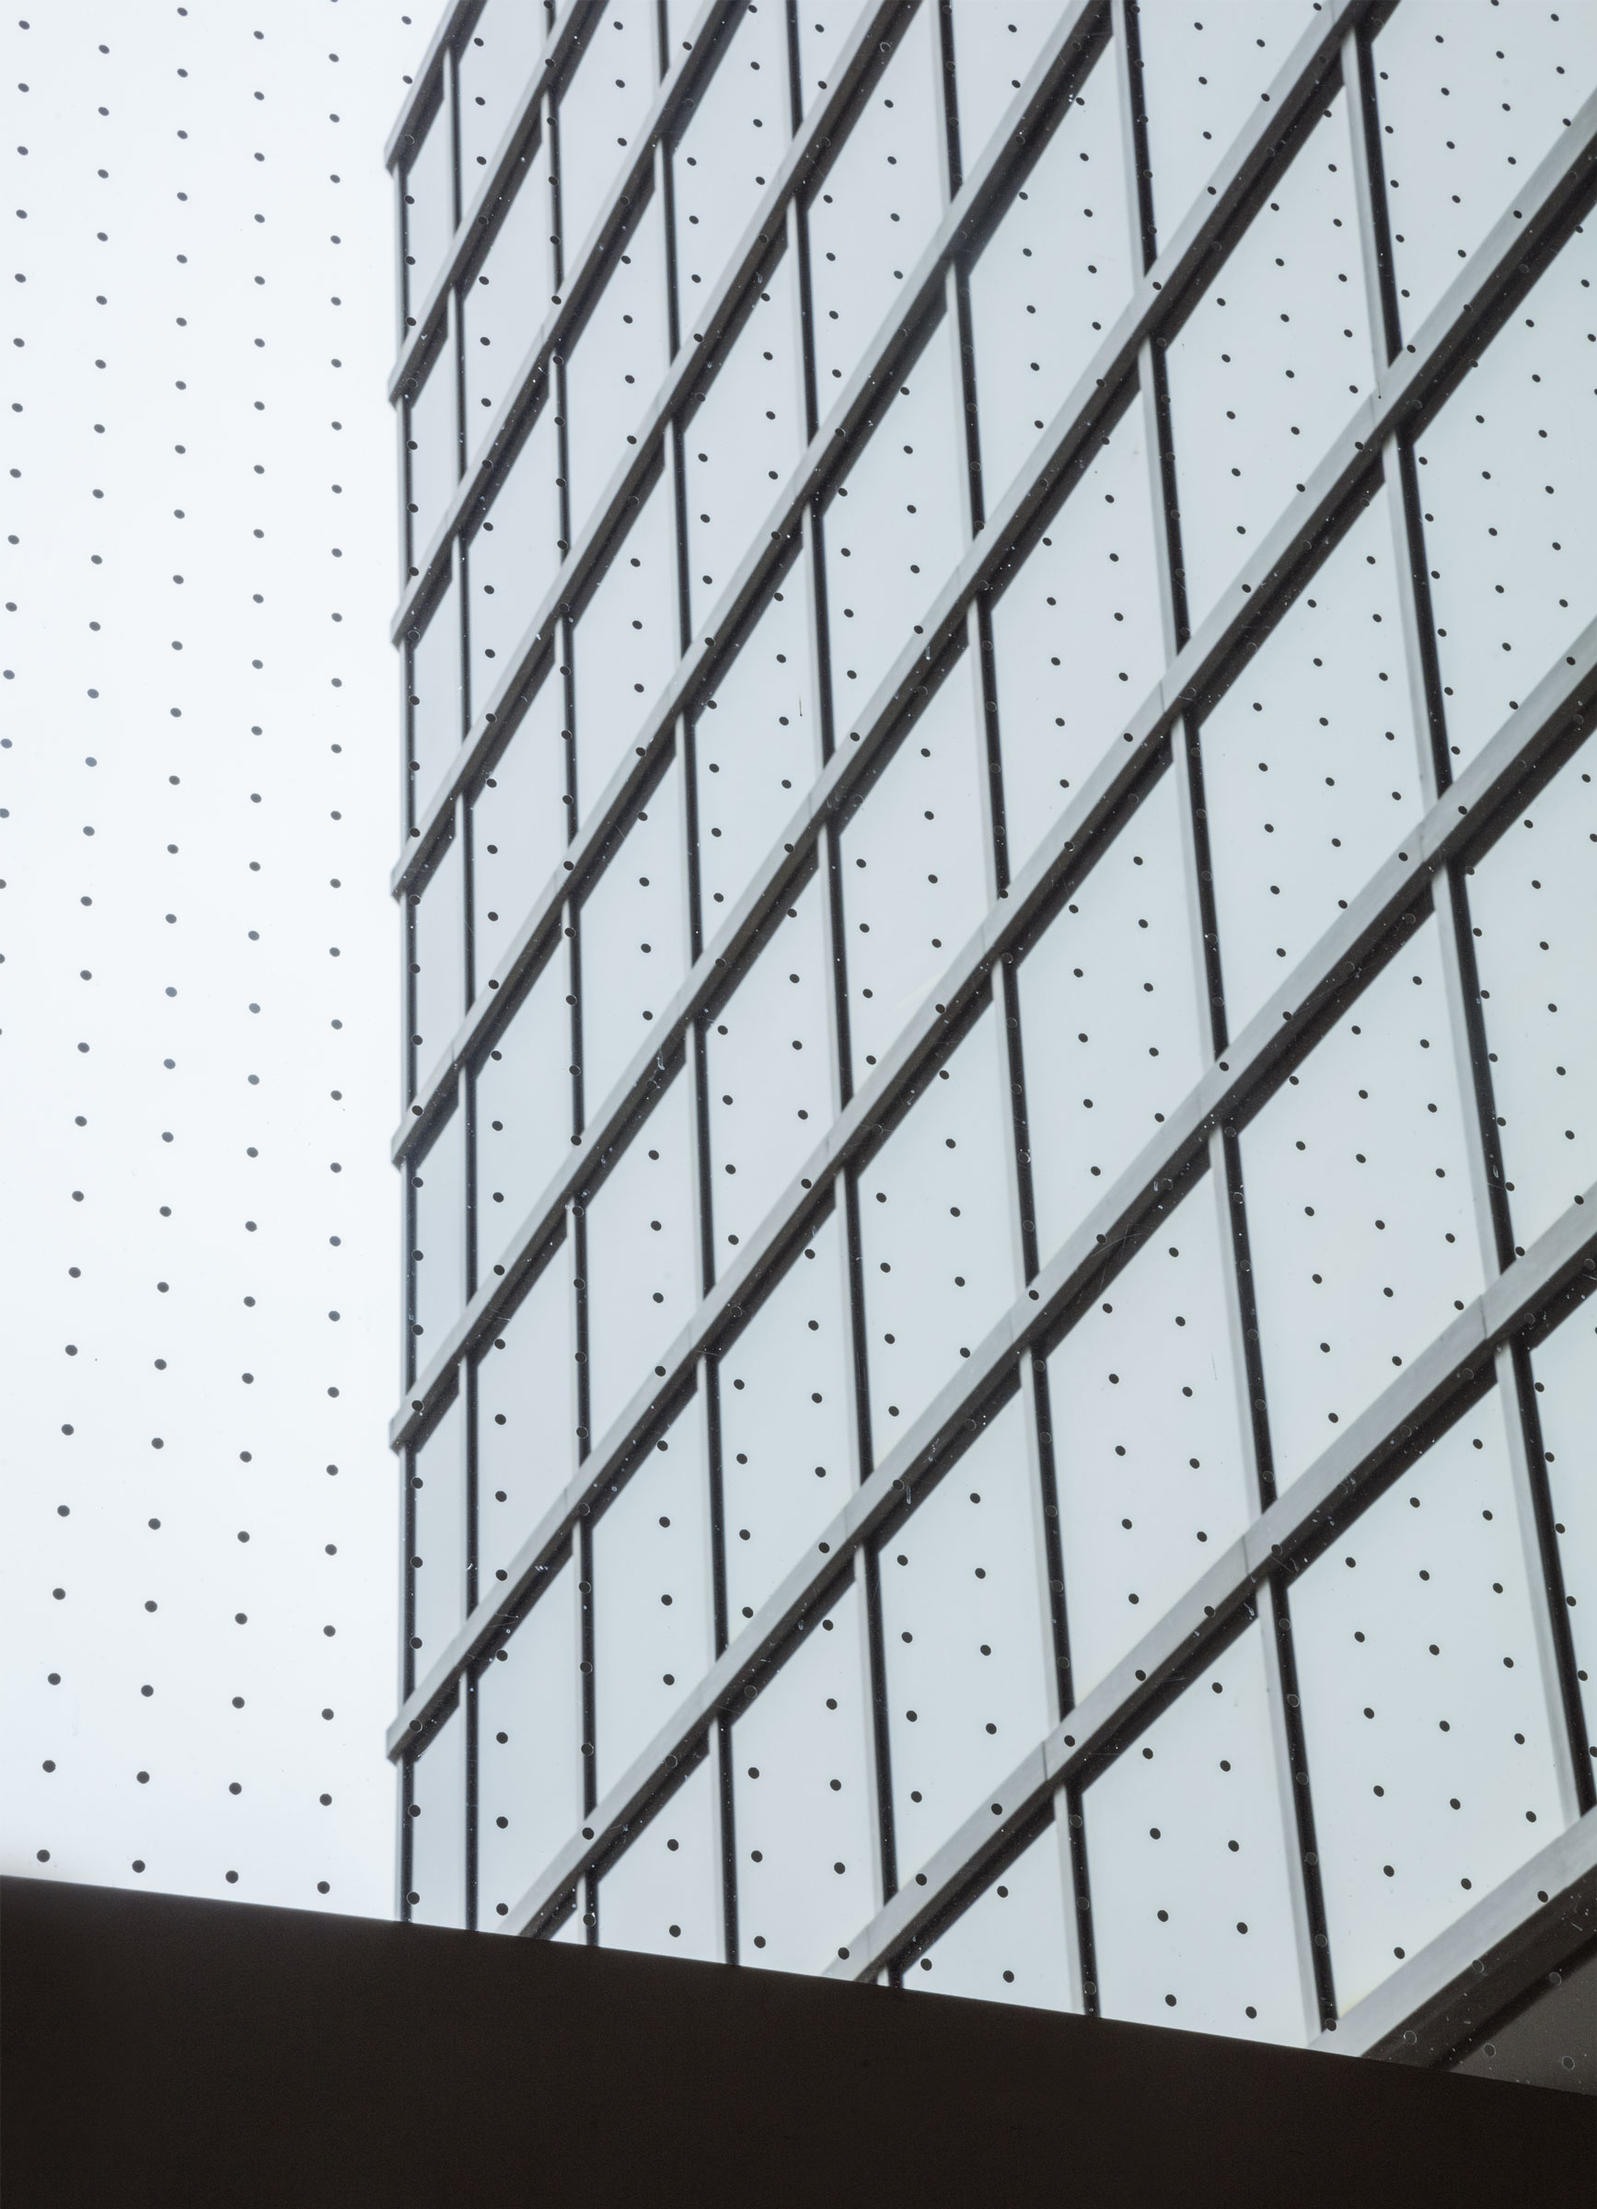 Looking out from inside this 13-story building in Toronto, the grid of dots installed to reduce collisions is noticeable but doesn't impede the view. Patterned glass was applied only to the eastern façade, which faces a park. Richard Barnes